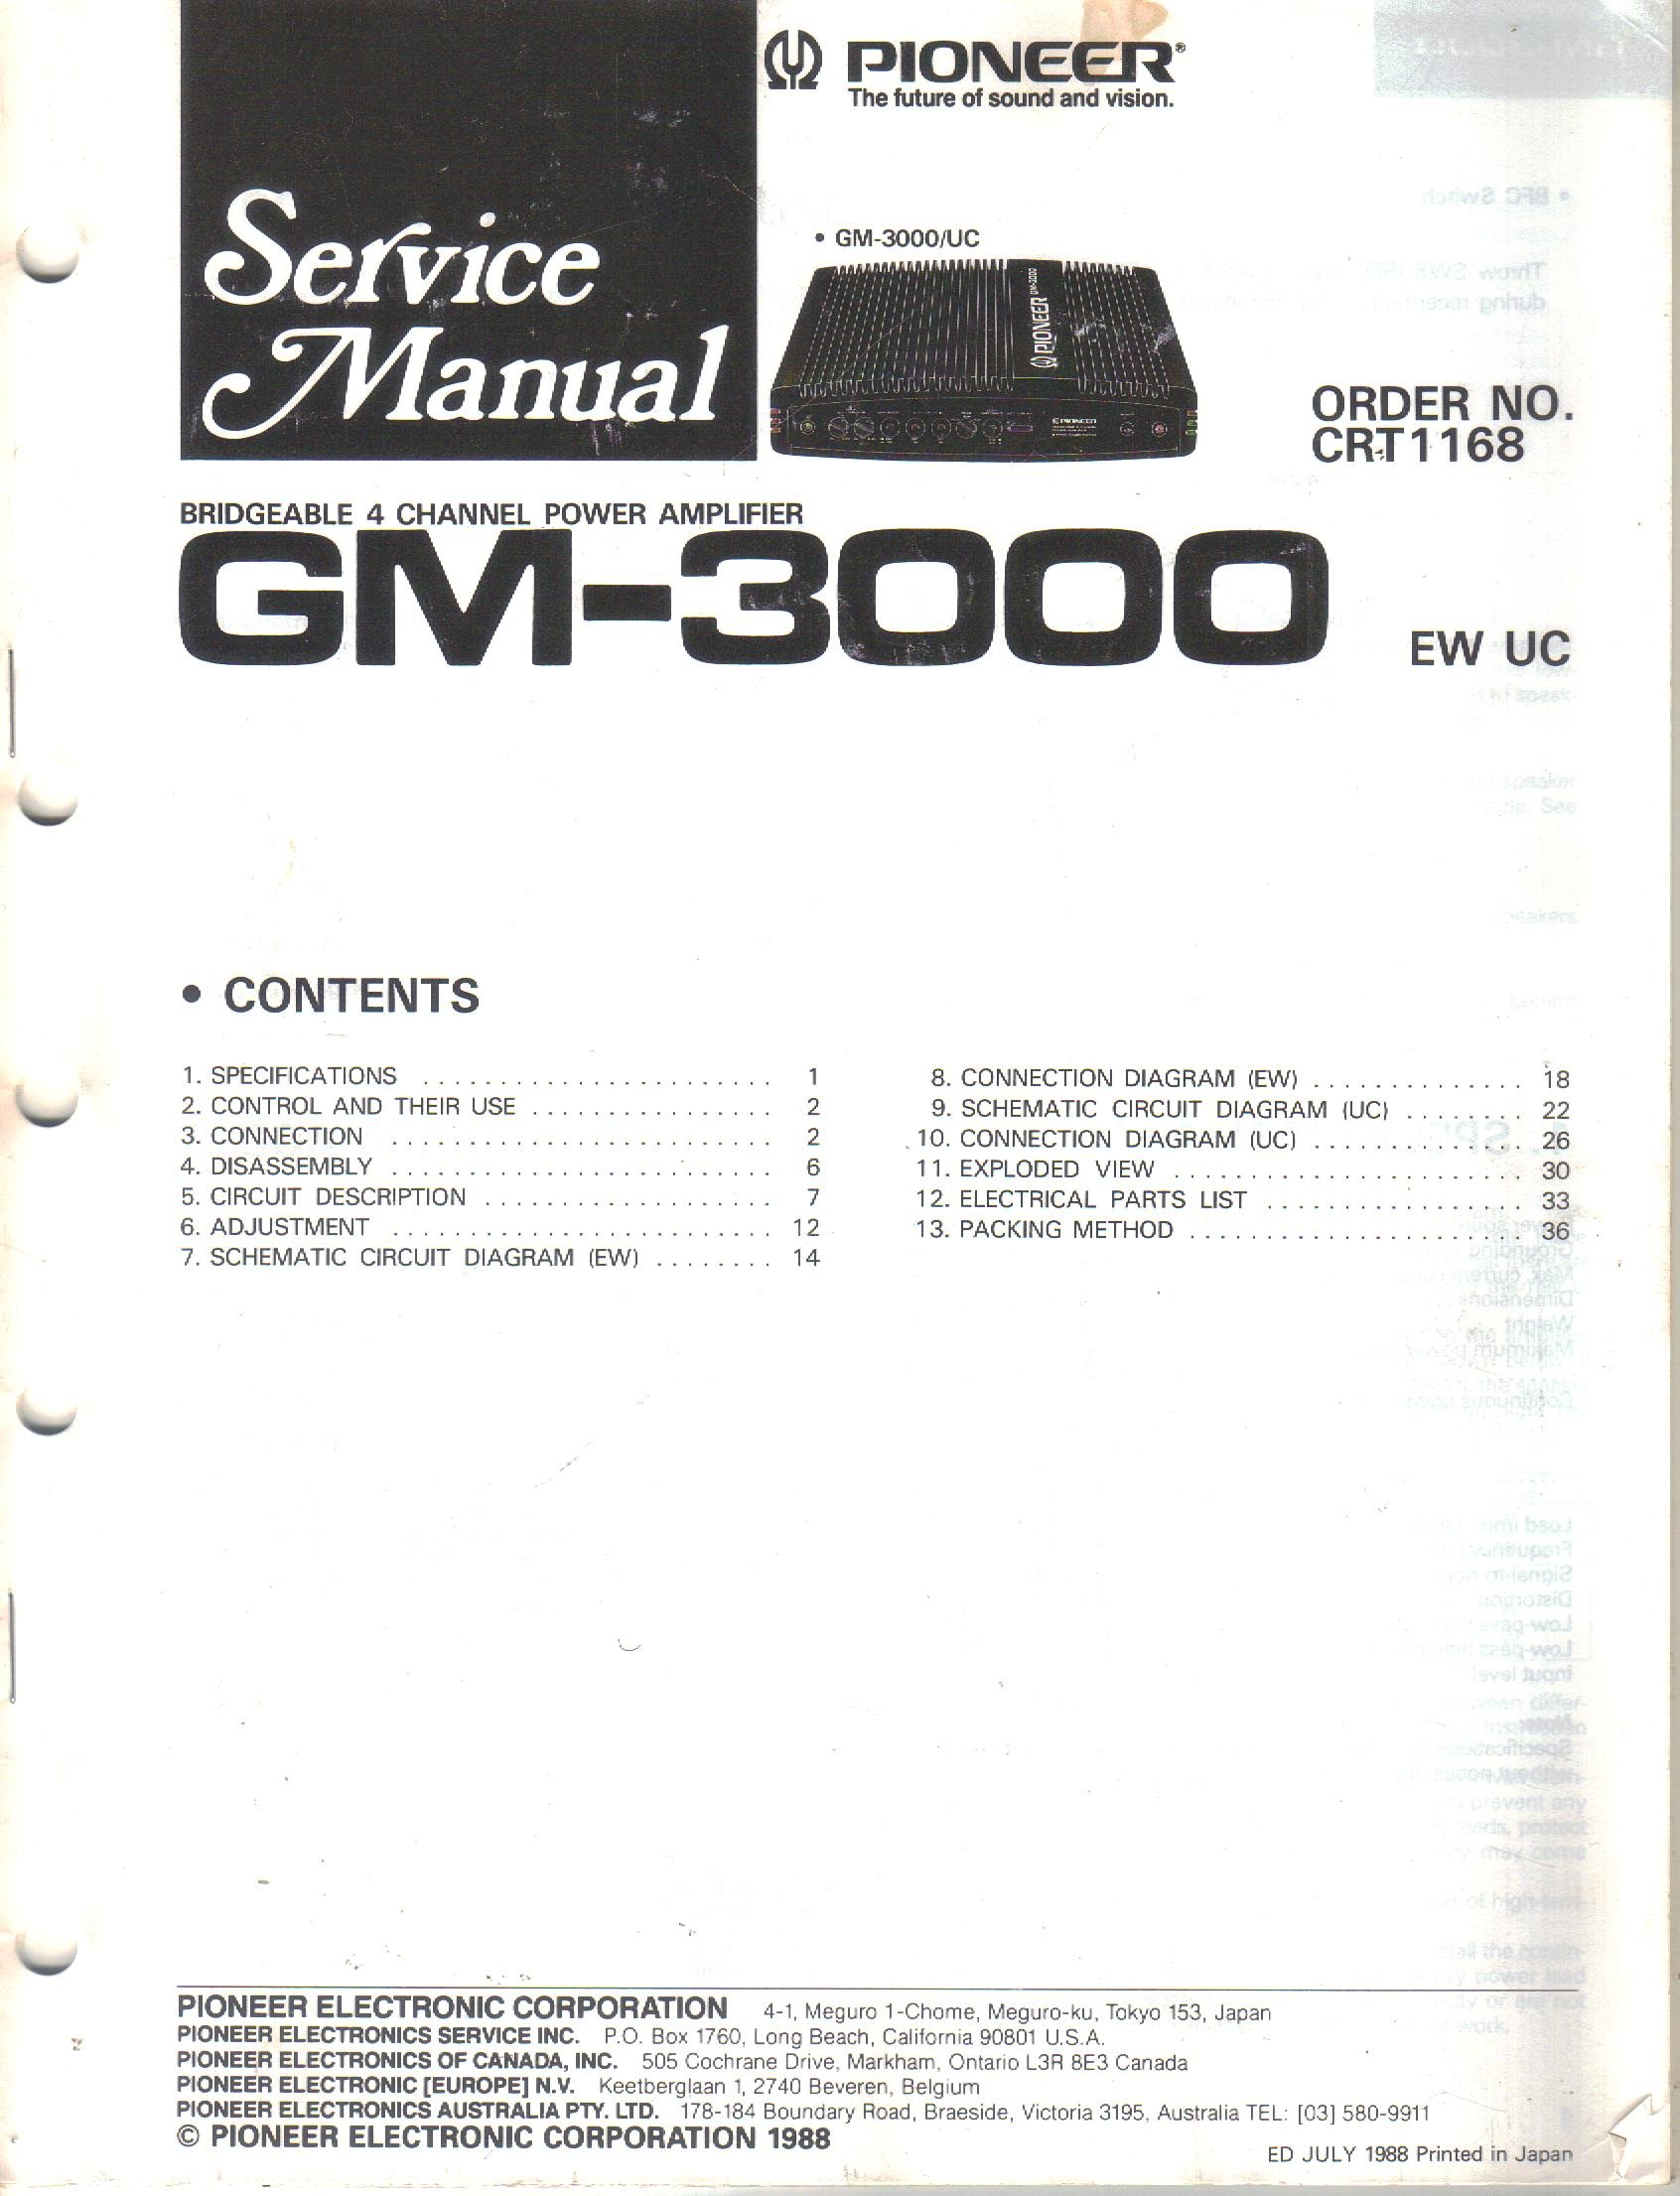 Pioneer Gm 3000 Bridgeable 4 Channel Power Amplifier Service Manual Spa Cover Diagram Free Download Wiring Diagrams Pictures Parts List Schematic Electronic Corp Not Stated